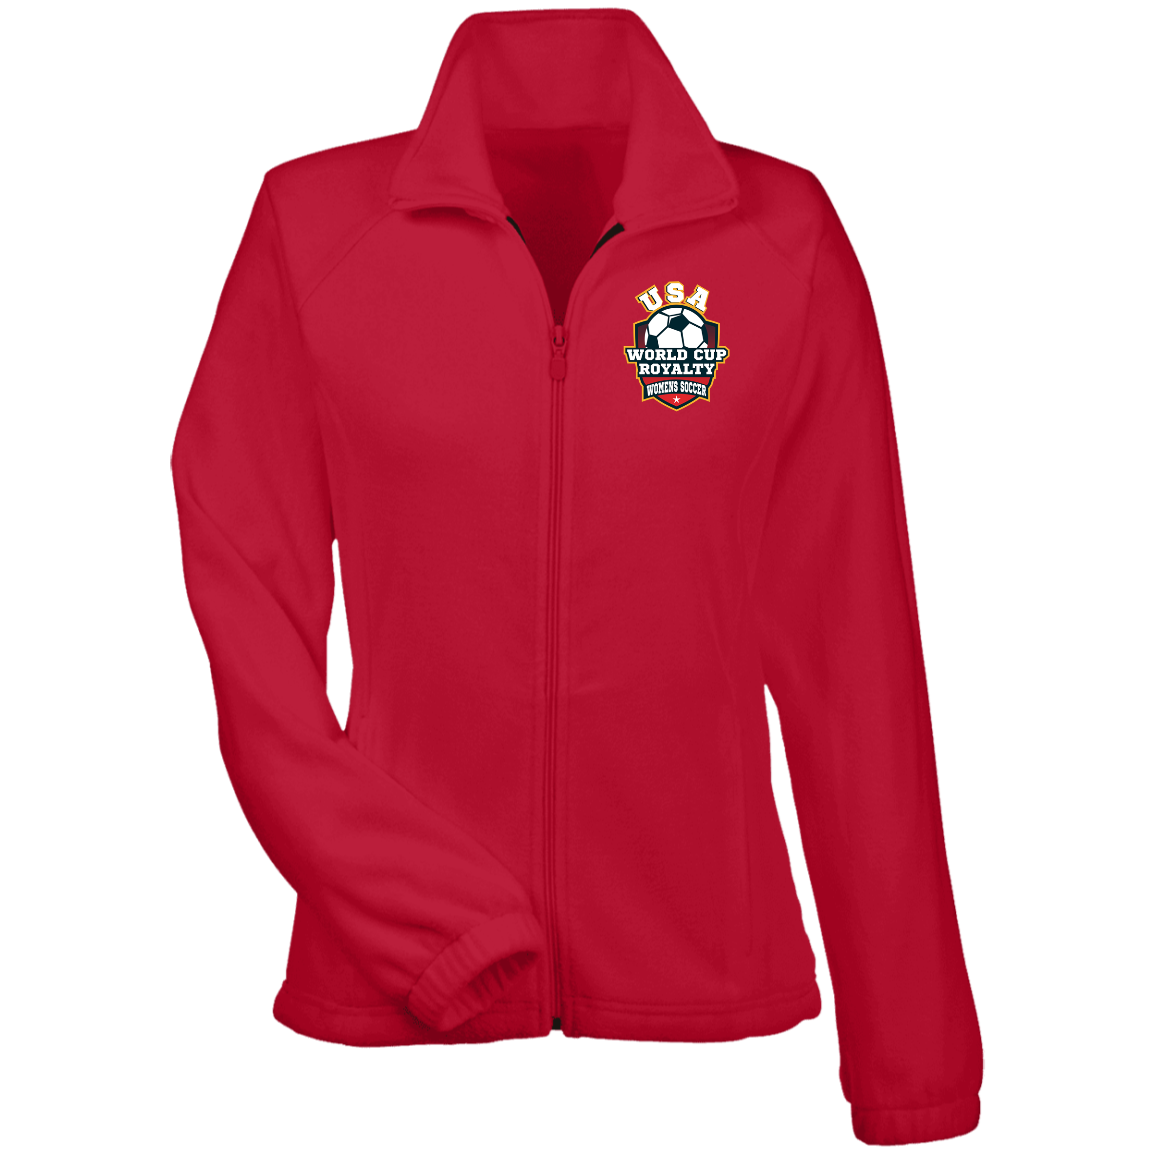 Ladies Fleece USA World Cup Royalty Soccer Jacket